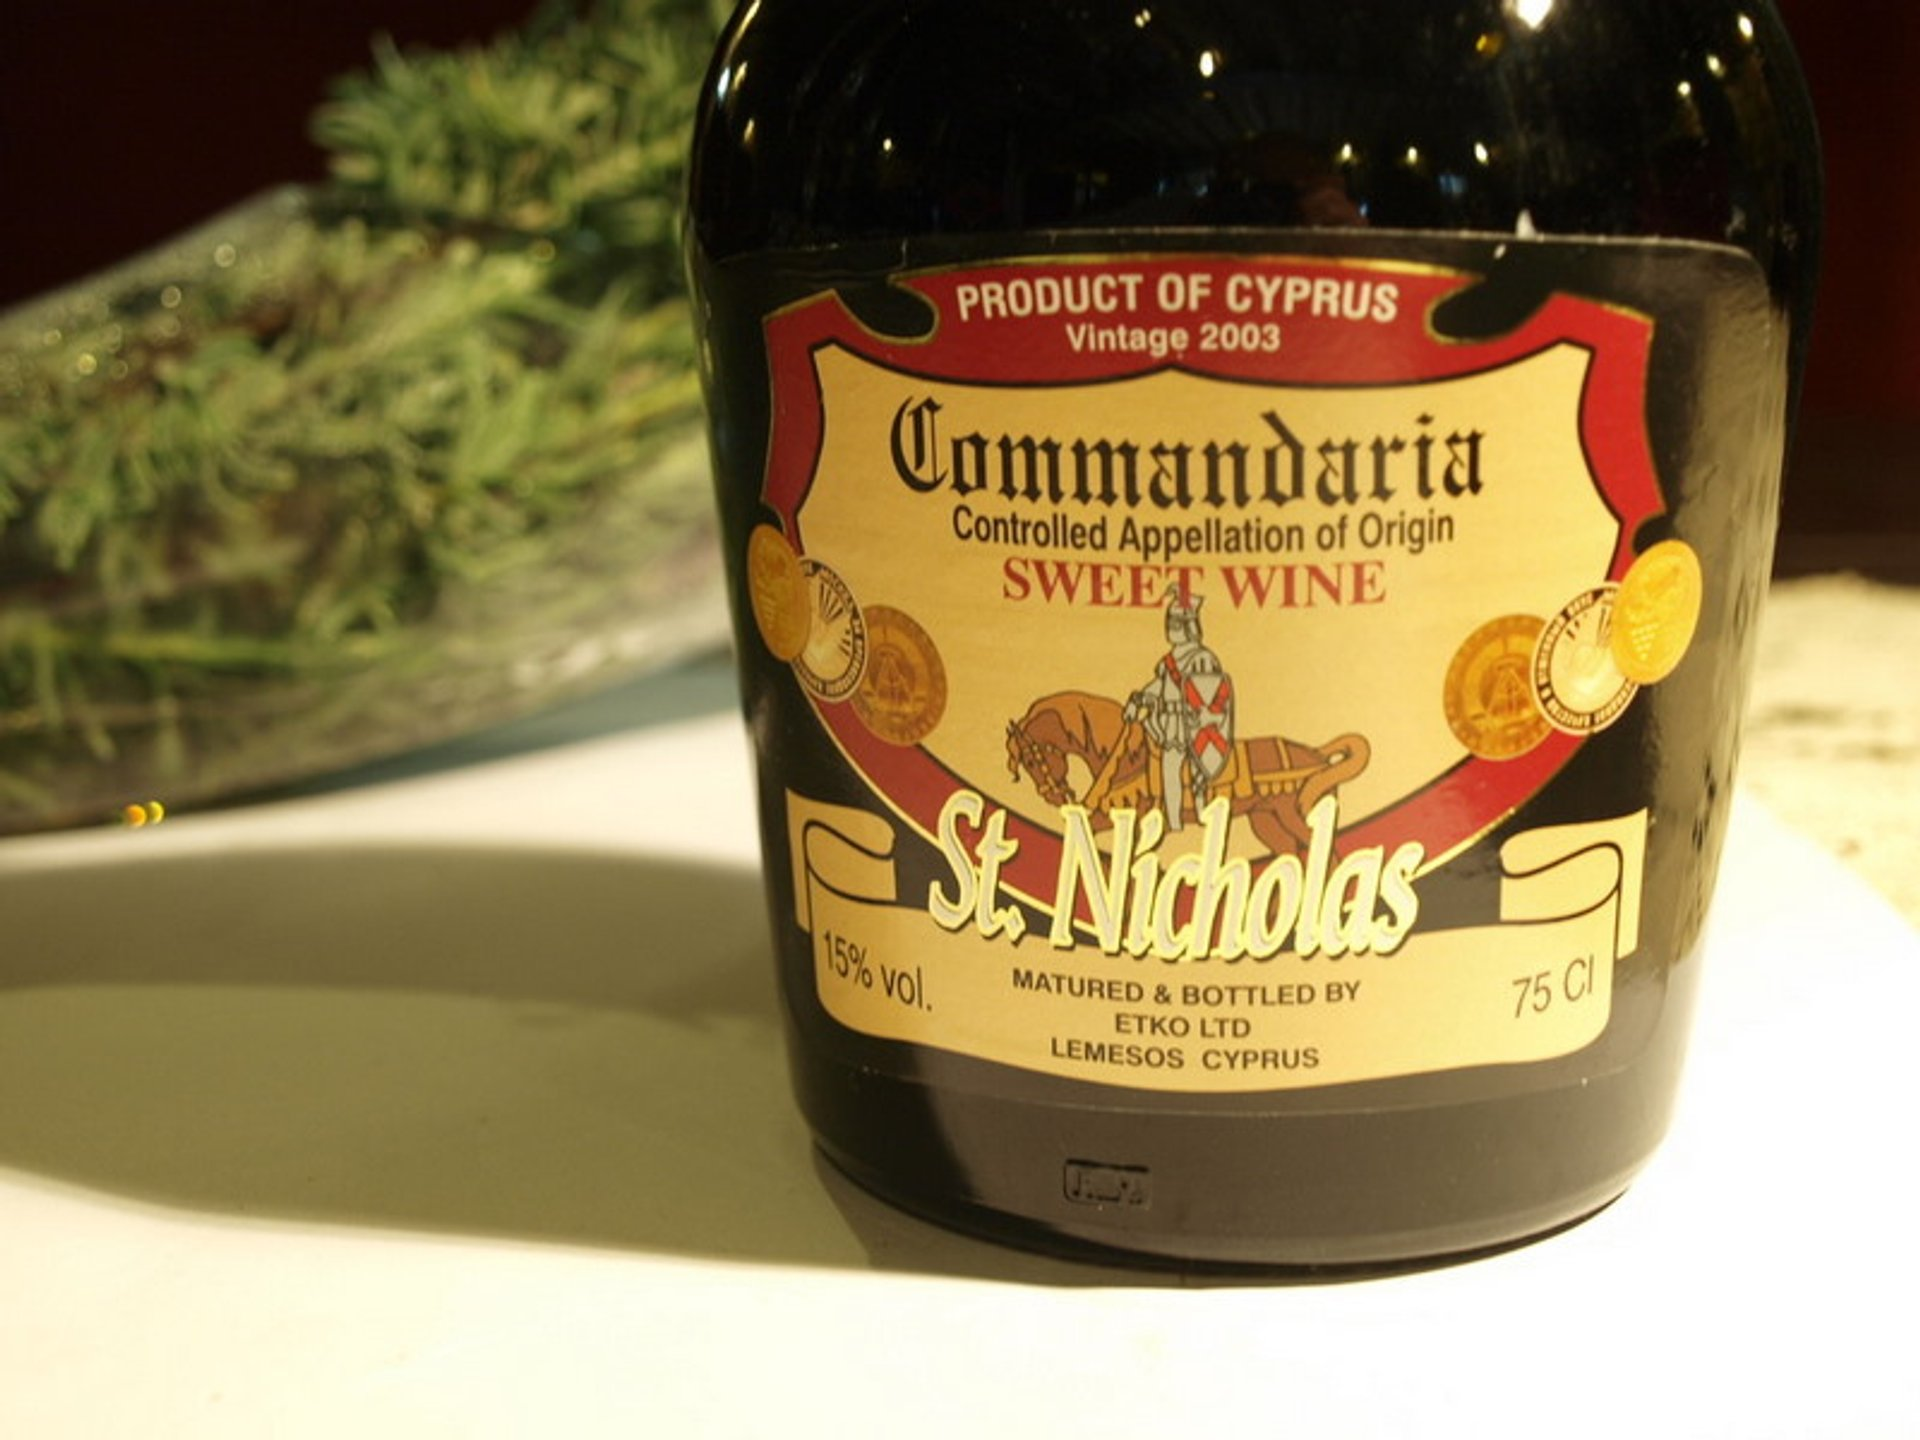 Commandaria Wine in Cyprus - Best Season 2019